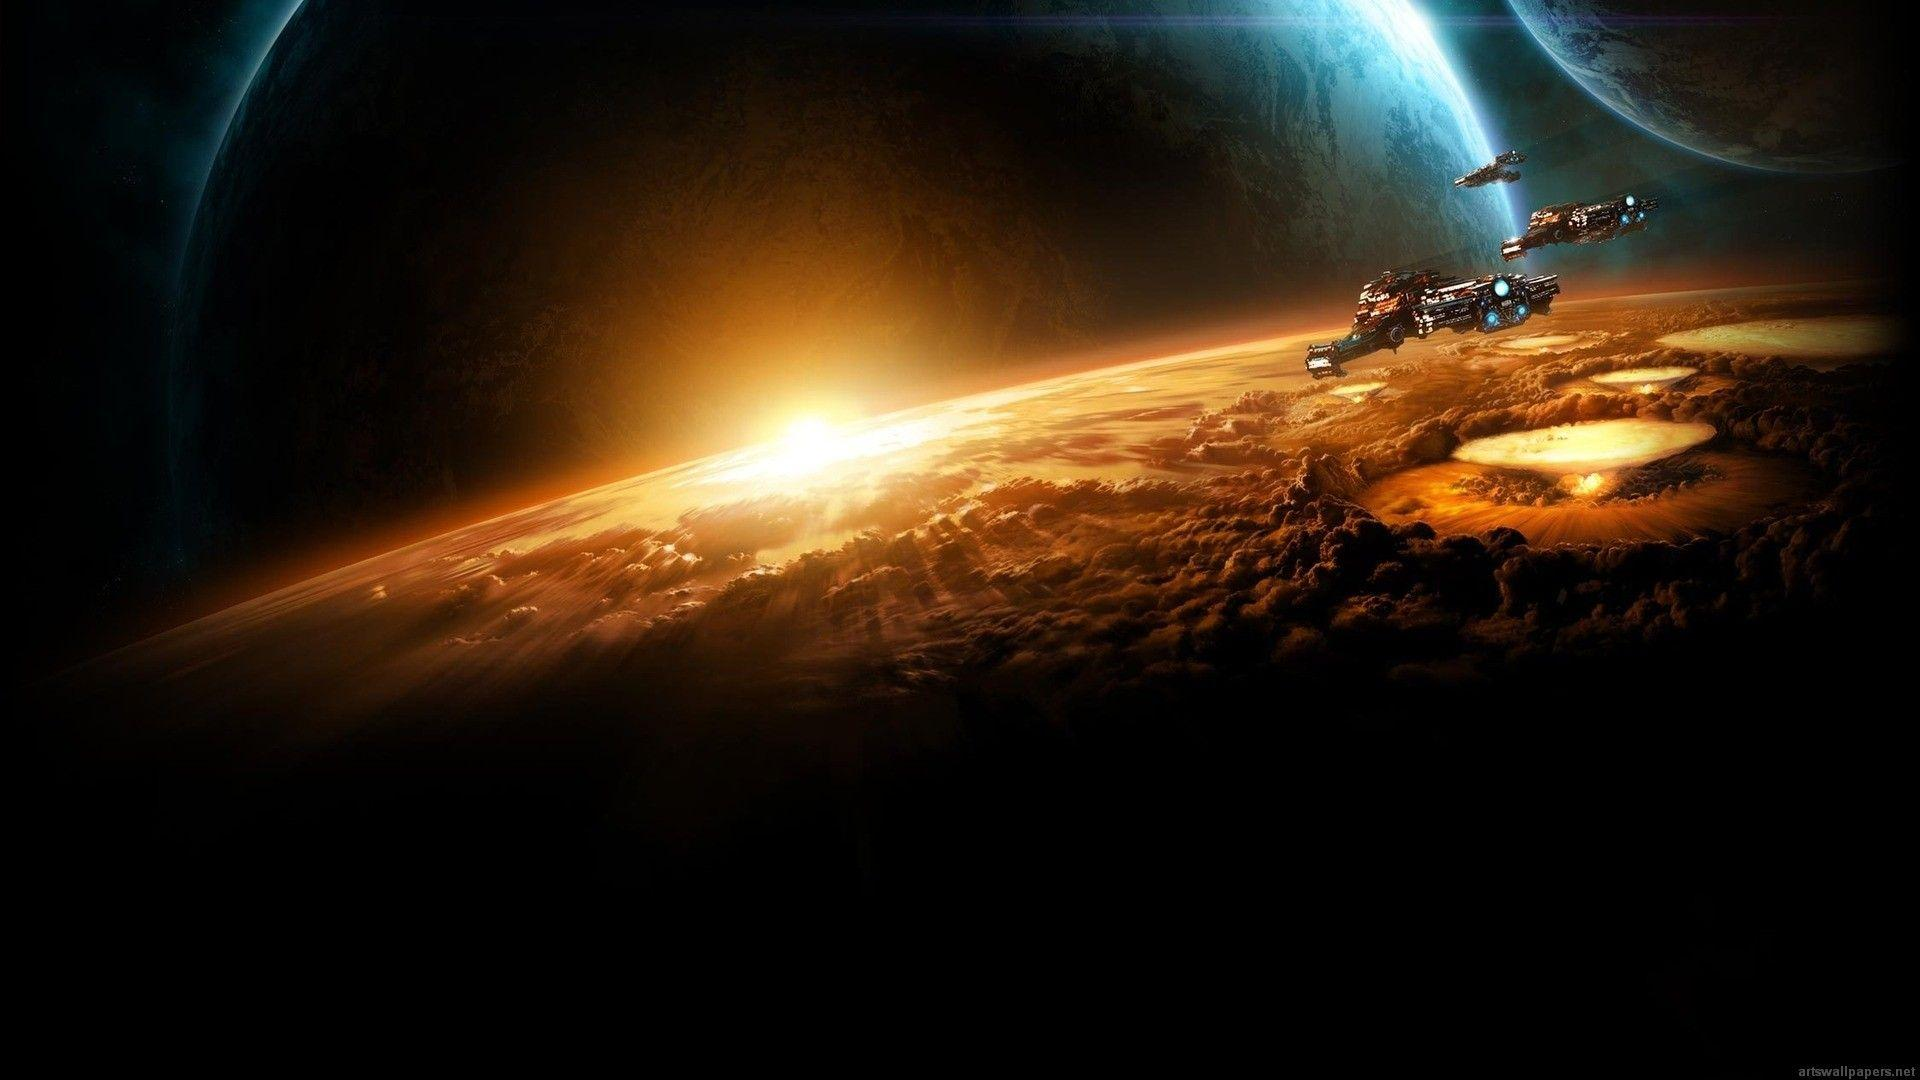 Hd Wallpapers For Pc In 1080p Wallpaper Cave